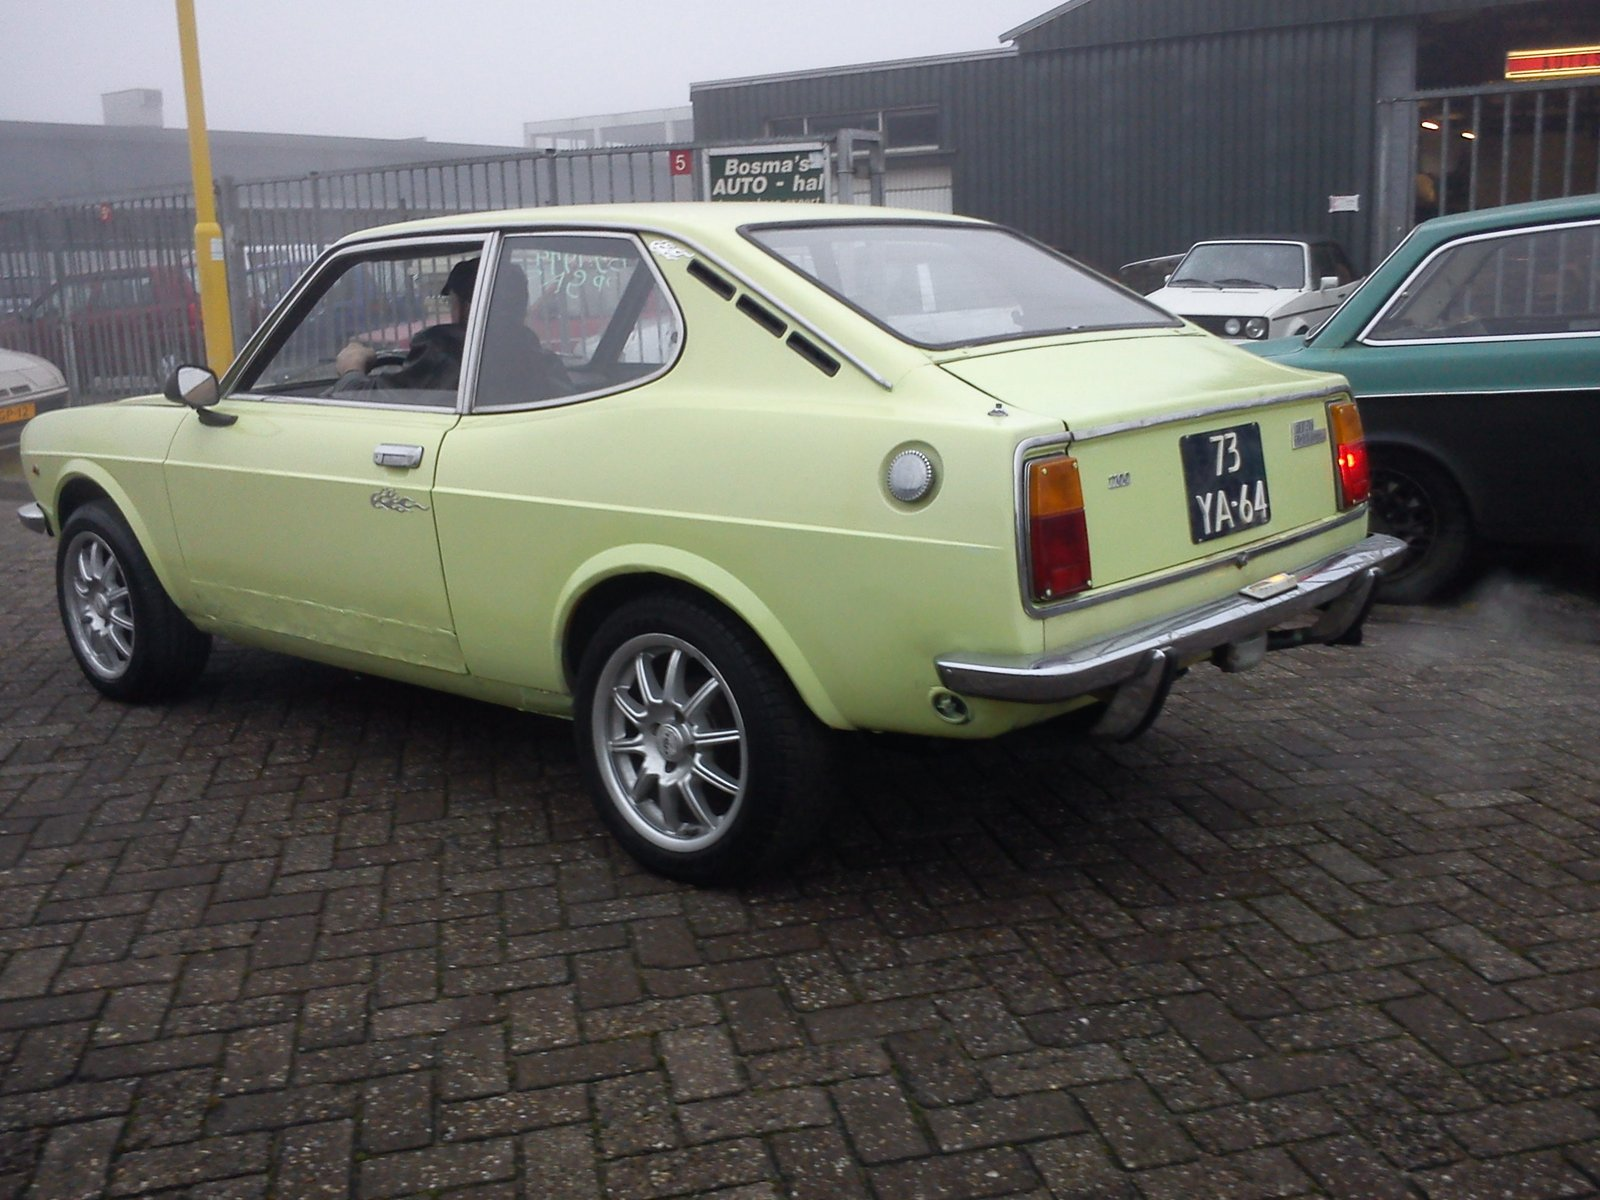 fiat 128 1974 coupe yellow partial restoration pictures of classic cars. Black Bedroom Furniture Sets. Home Design Ideas